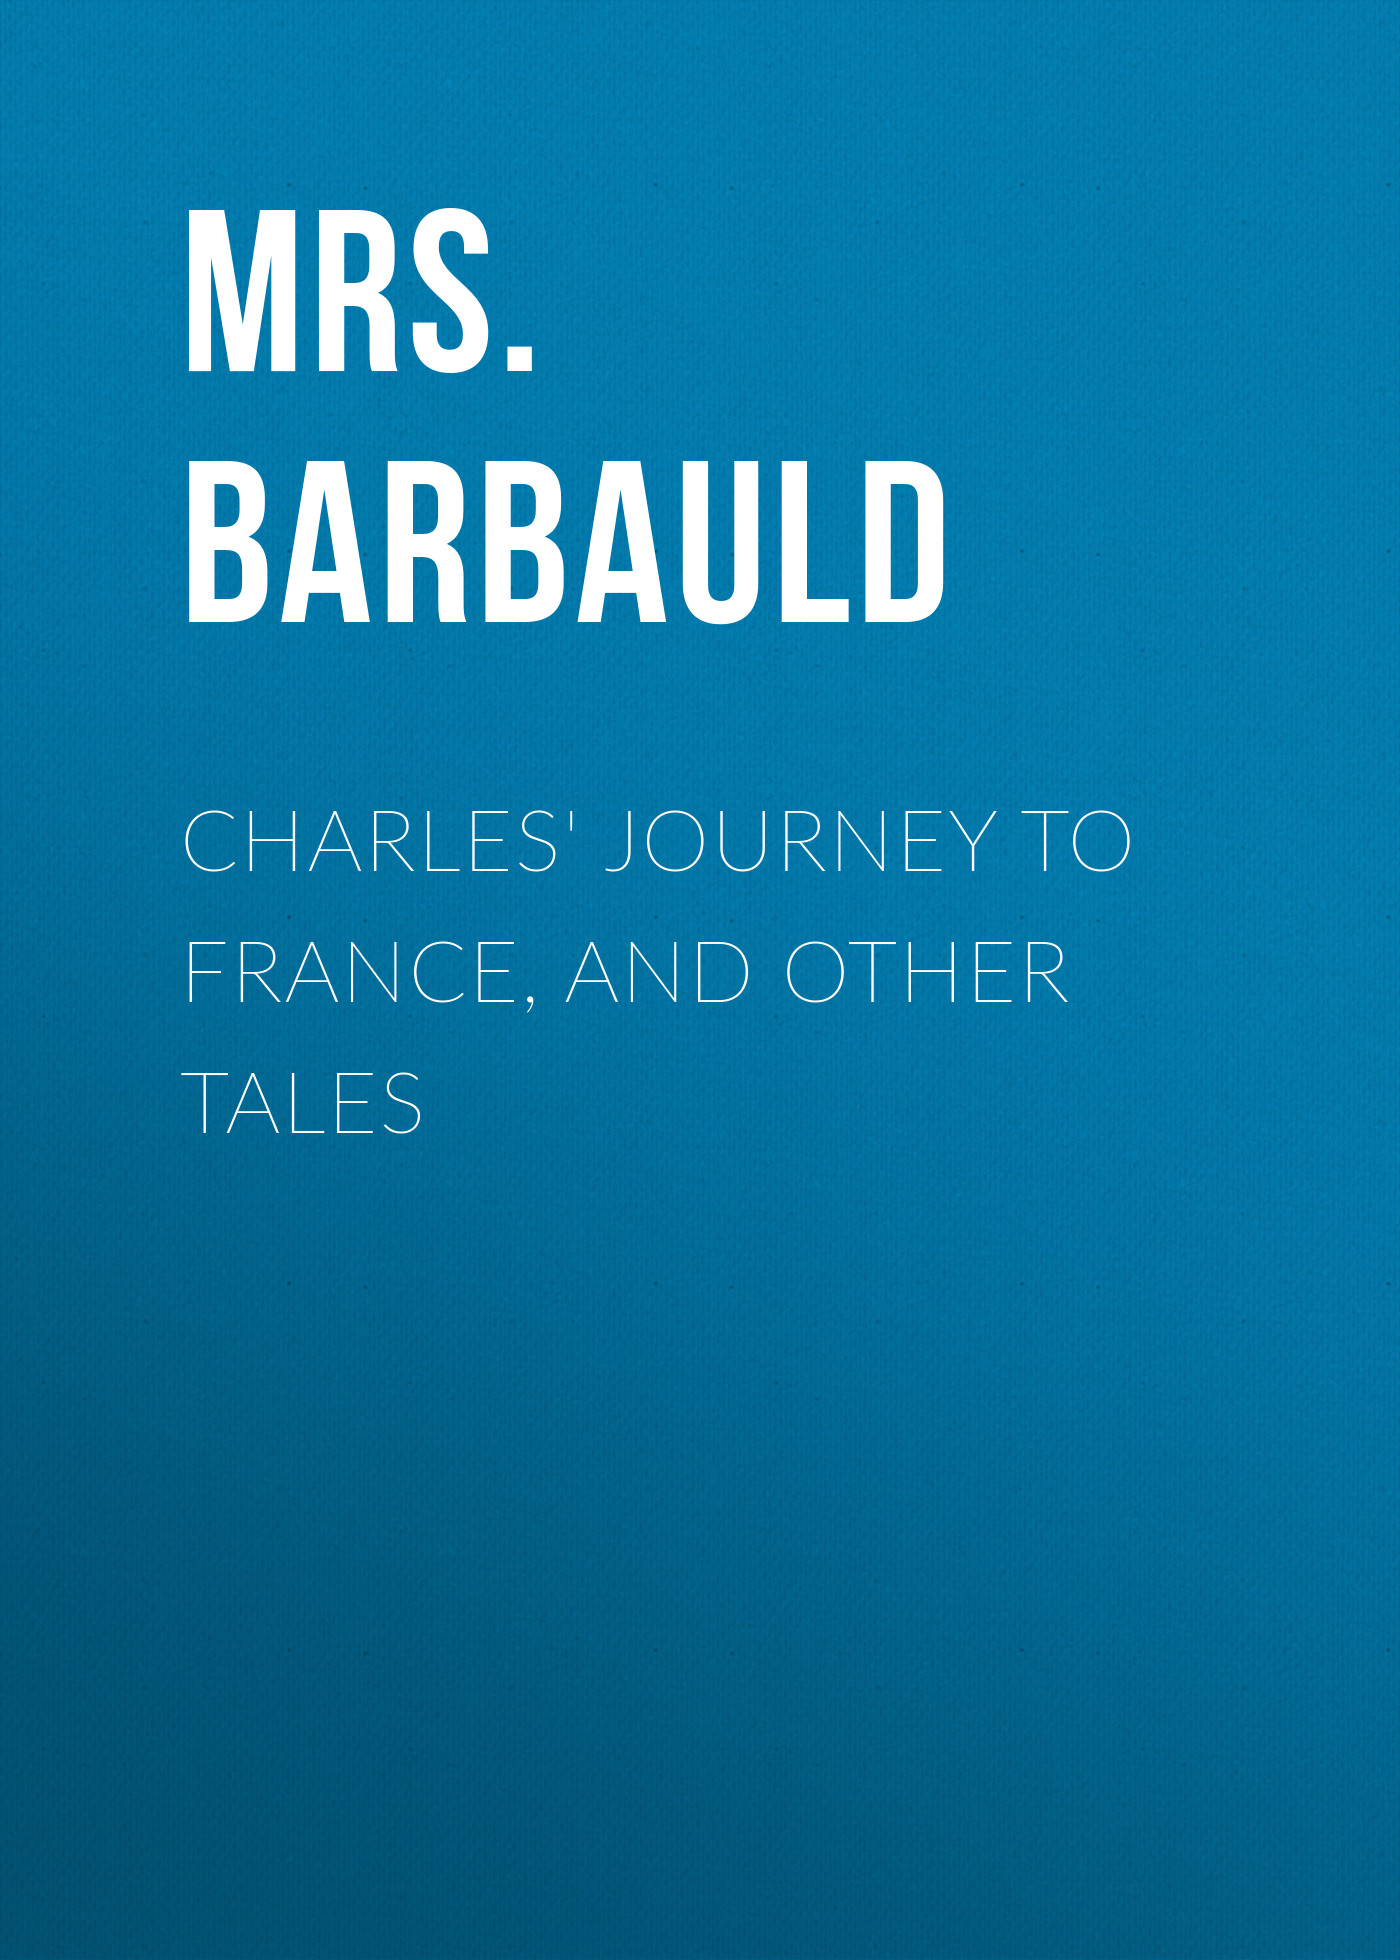 charles journey to france and other tales